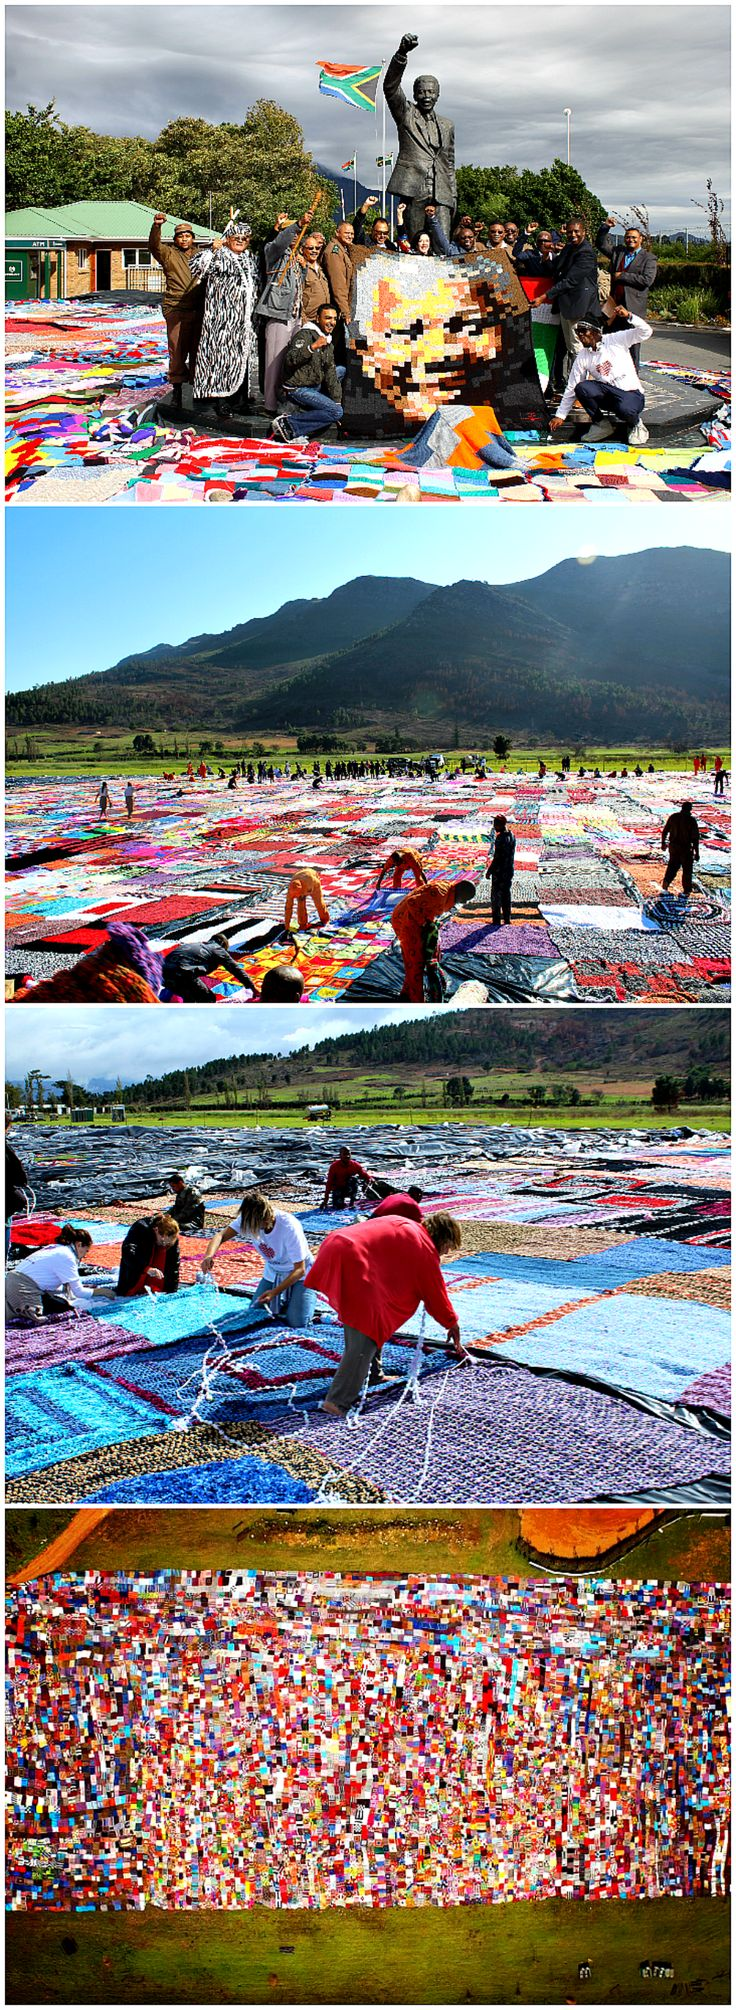 The largest crochet blanket is 17,188.57 m² (185,016 ft²) and was made by 67 Blankets for Nelson Mandela Day, the Department of Correctional Services and the Nelson Mandela Foundation (all South Africa), as measured in Western Cape, South Africa, on 22 April 2016. The blanket was crocheted with the help of around 1,500 inmates from 30 correctional centres across South Africa. #art #craft #DIY #cooperation #together #knitting #crochet #crochetting #blankets #projects #ideas #records #mandela